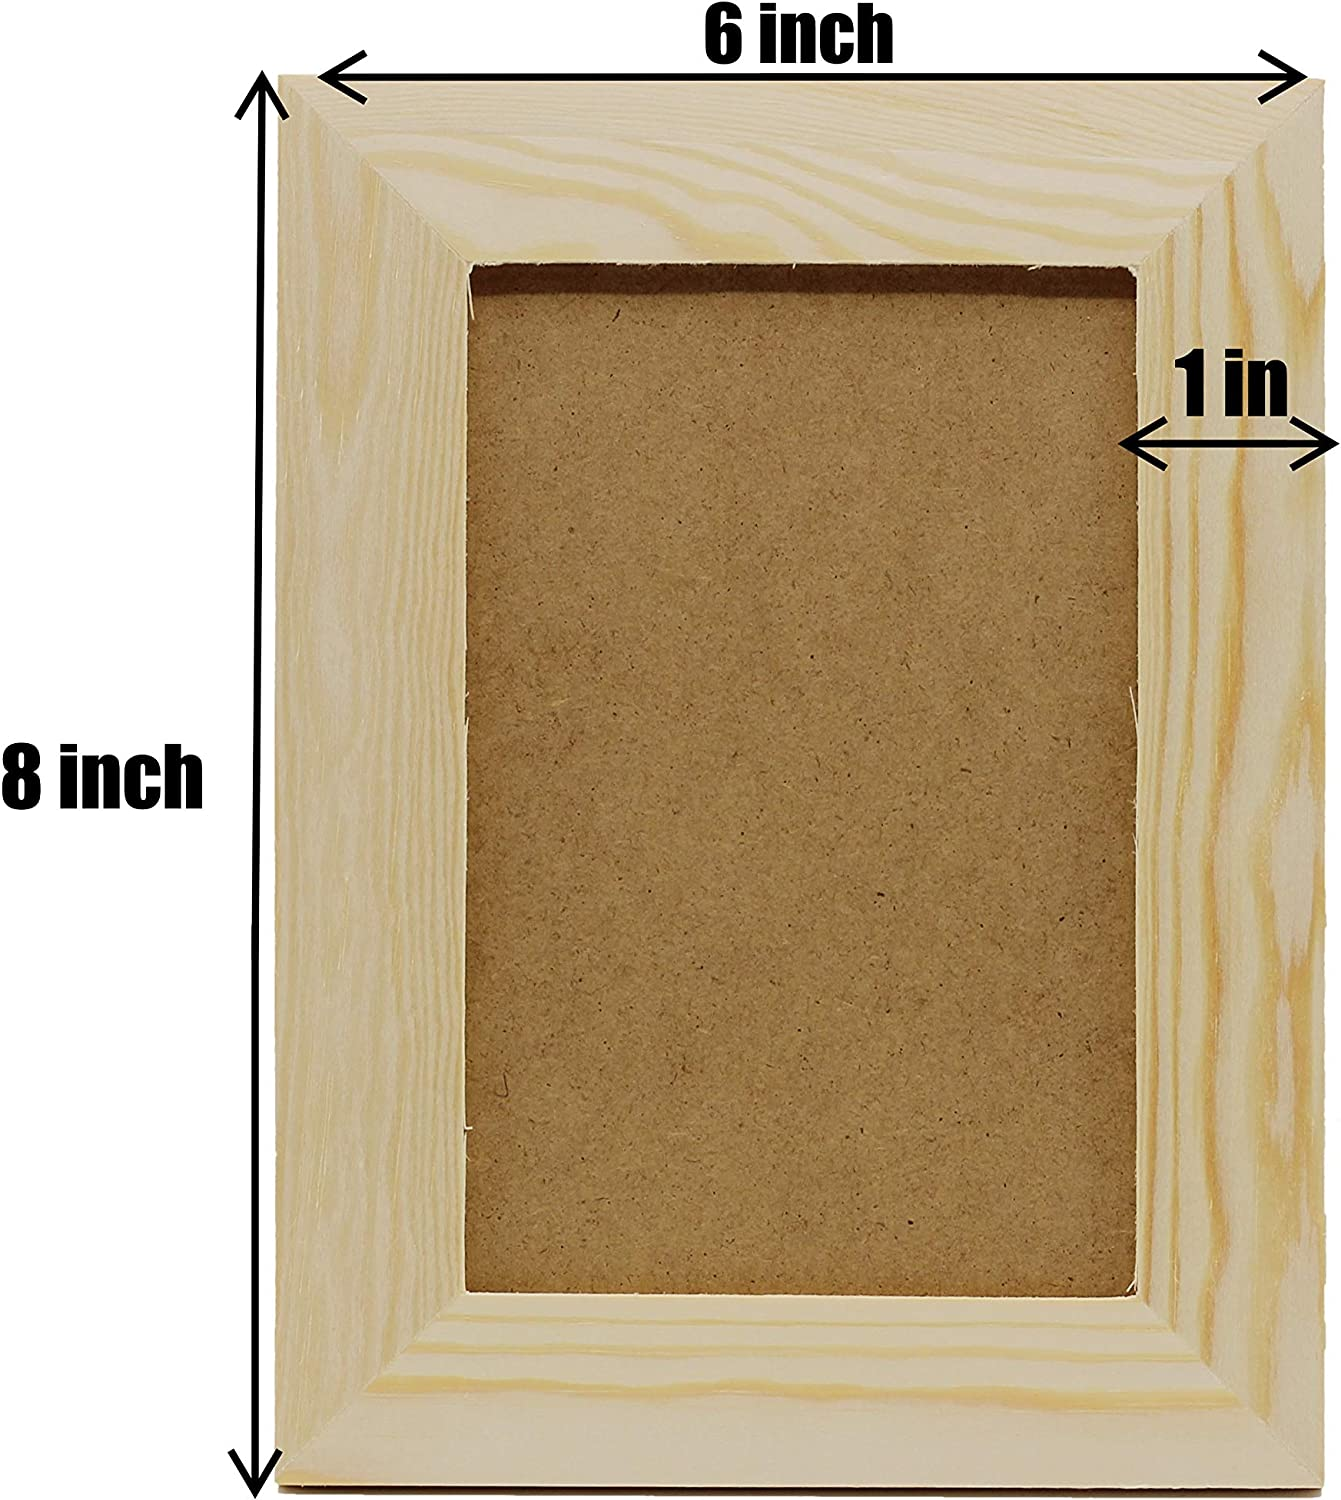 Wooden Plain Photo//Picture Frame Holder for DIY Scrapbooking Home Decoration